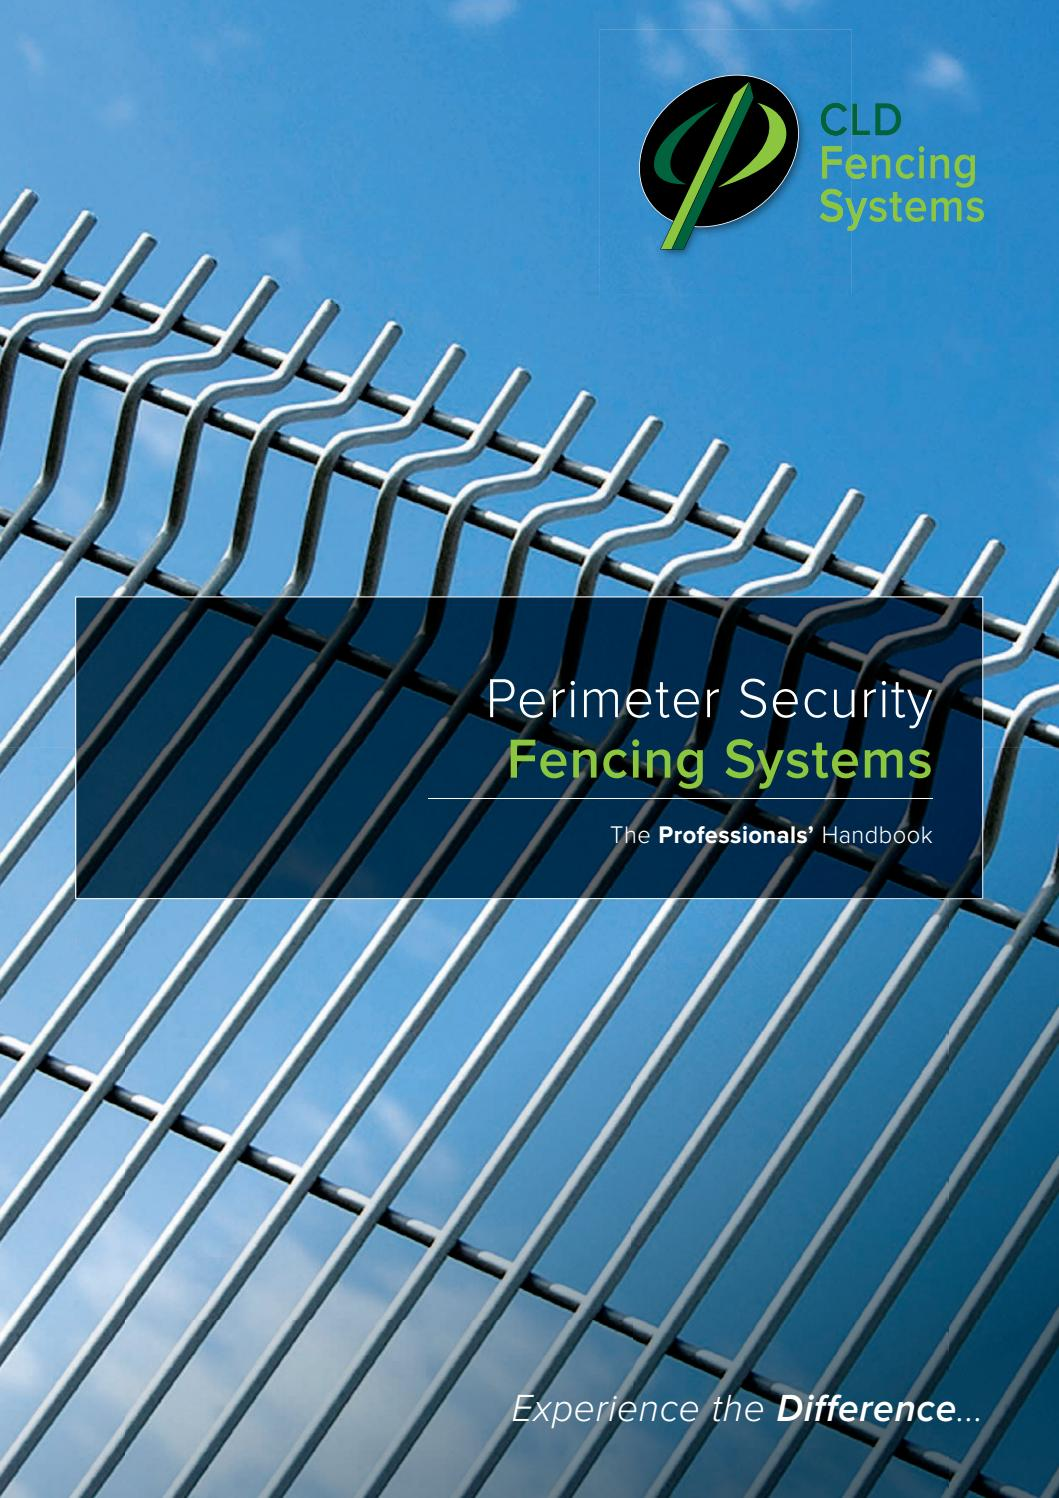 Perimeter Security Fencing Systems By Cld Fencing Systems